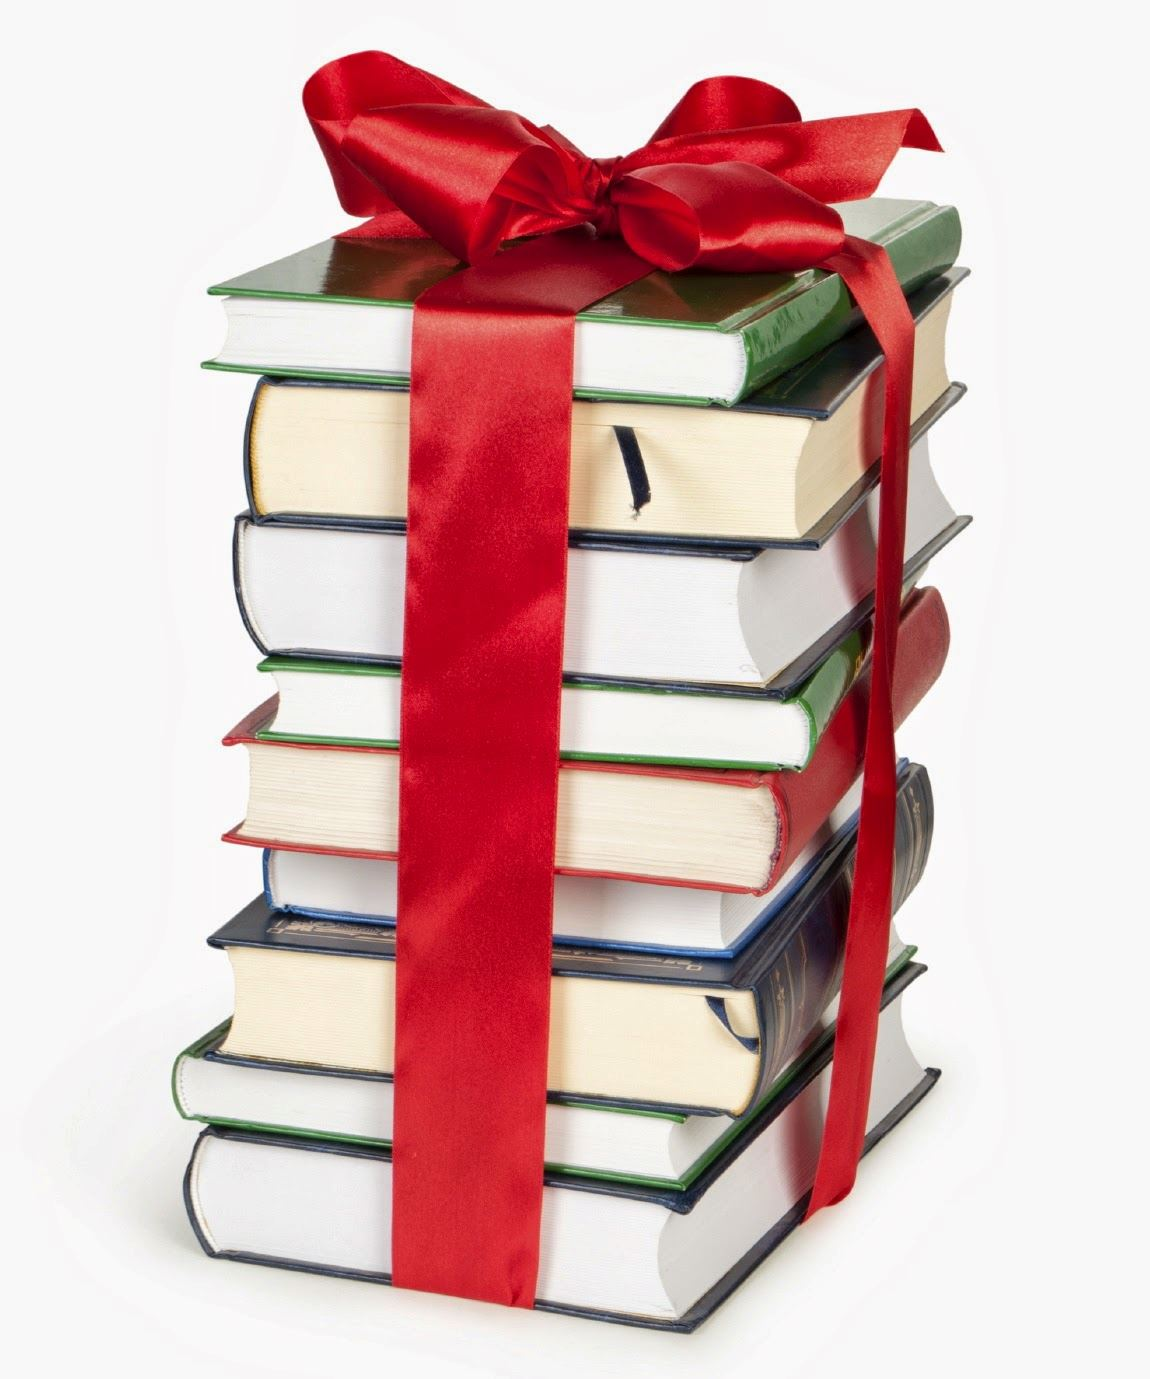 Pile of books tied together with red bow